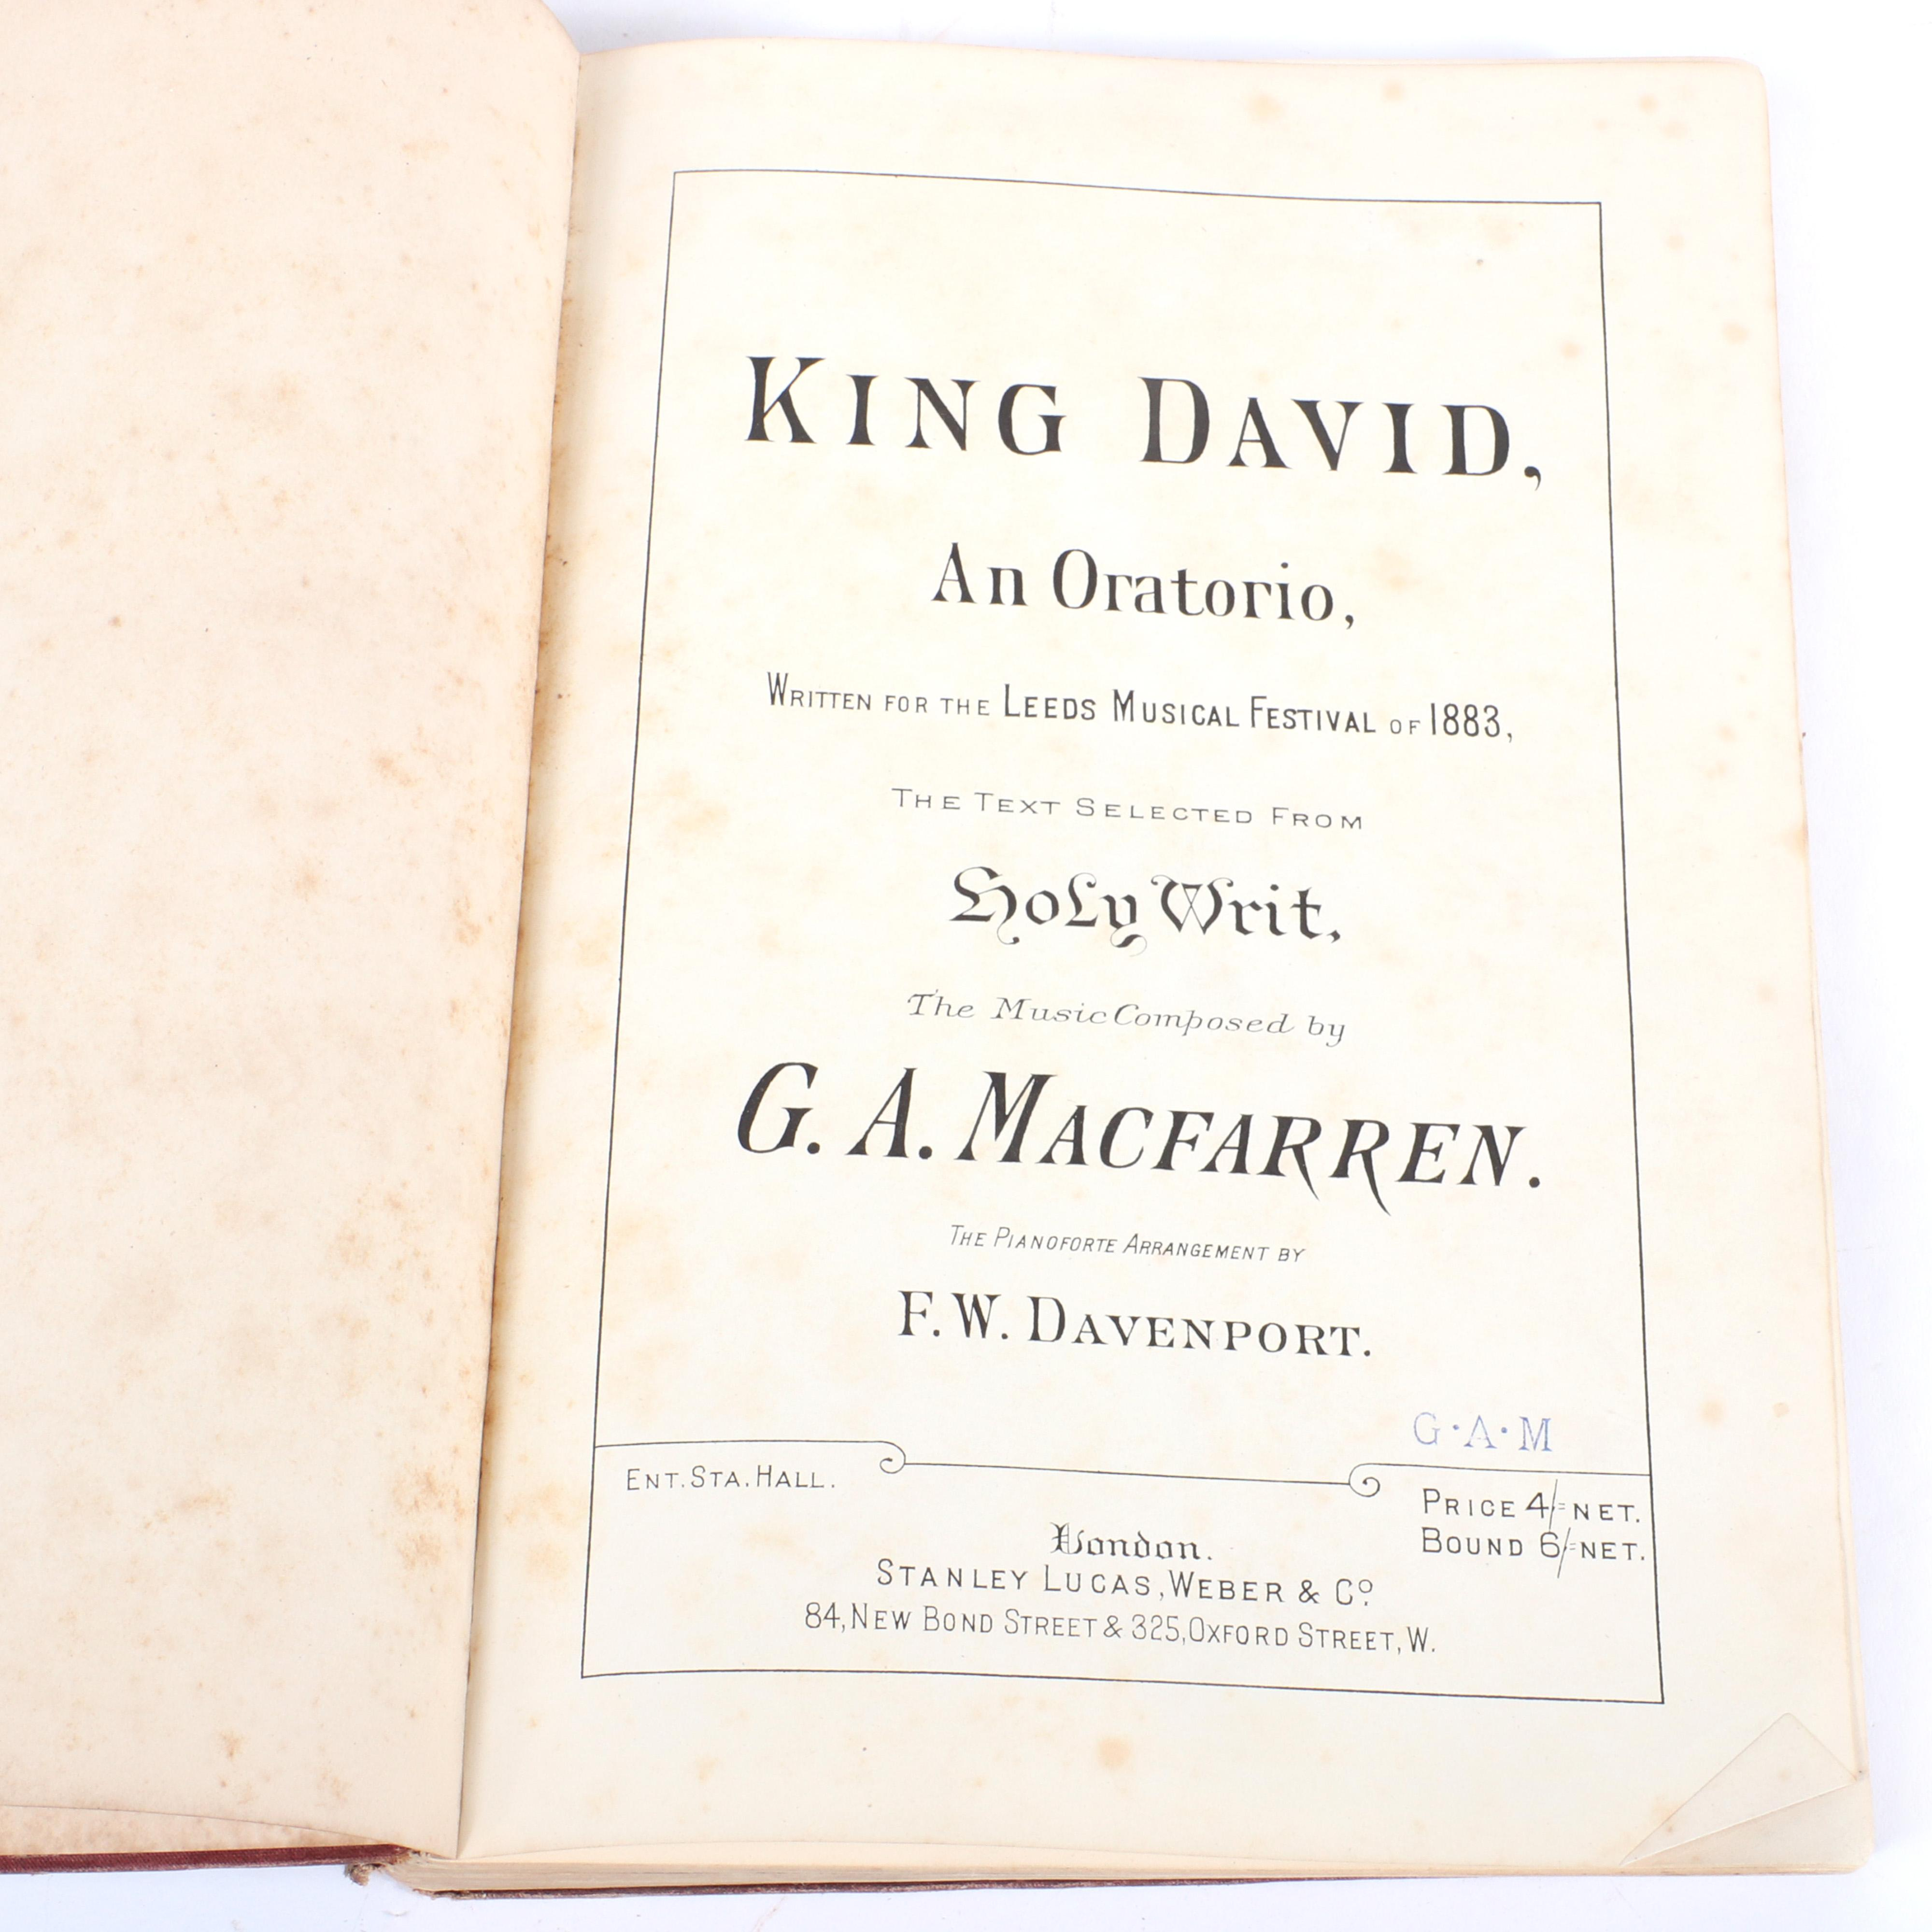 "King David, An Oratorio, Written for the Leeds Musical Festival of 1883, The Text Selected from Holy Writ, G.A. Macfarren, Pianoforte Arrangement F.W. Davenport, London, Stanley Lucas, Weber & Co. 1""H x 8""W x 11""D"